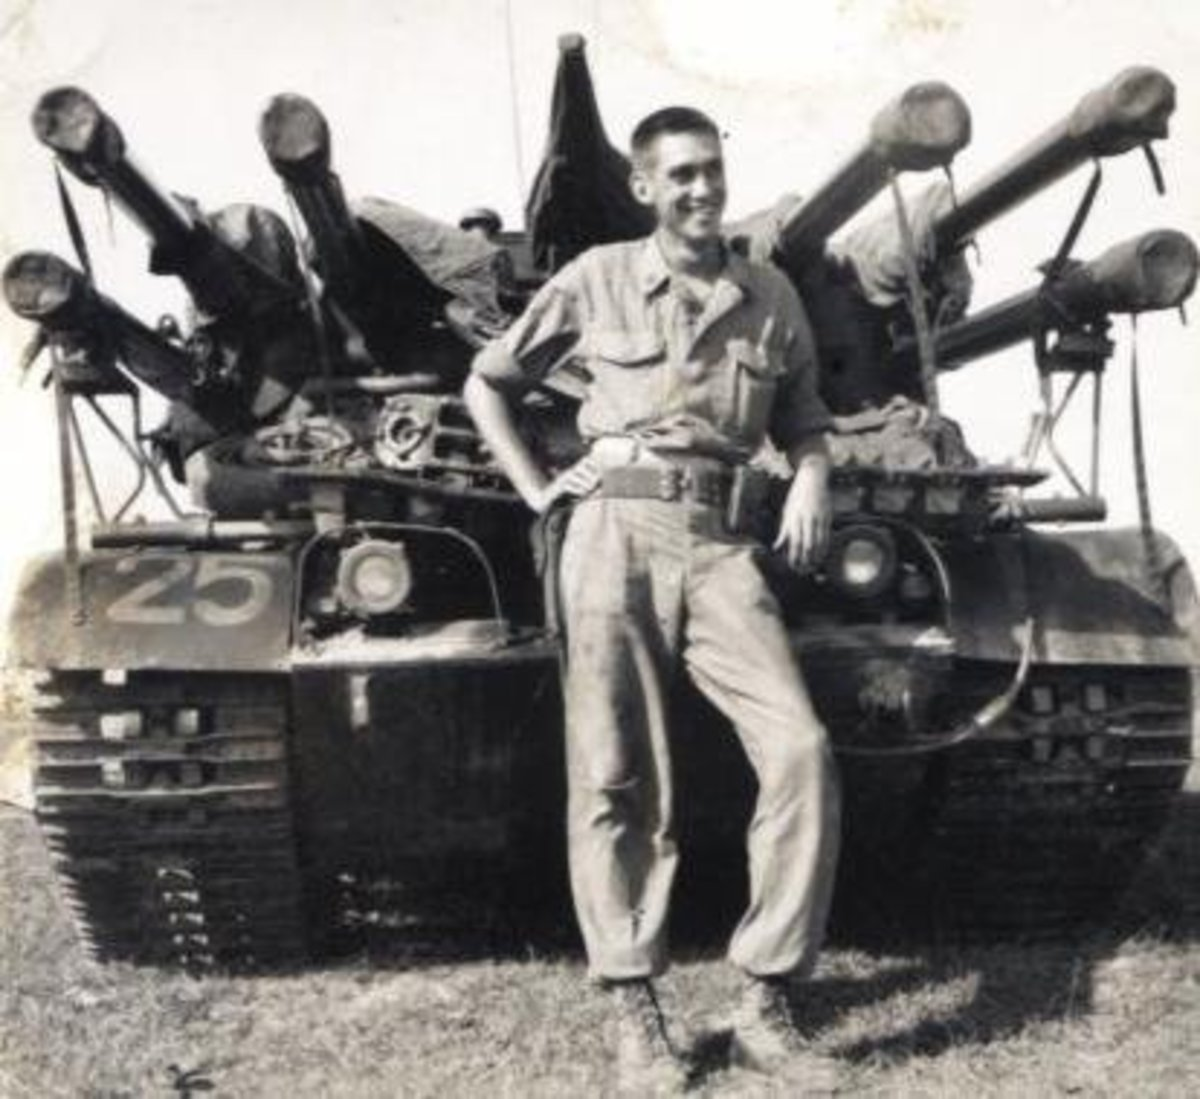 Preston Sewell was an Ontos crewman from 1962-66 with the USMC 1st Anti-Tank Bn and 3rd Anti-Tank Bn. Communications